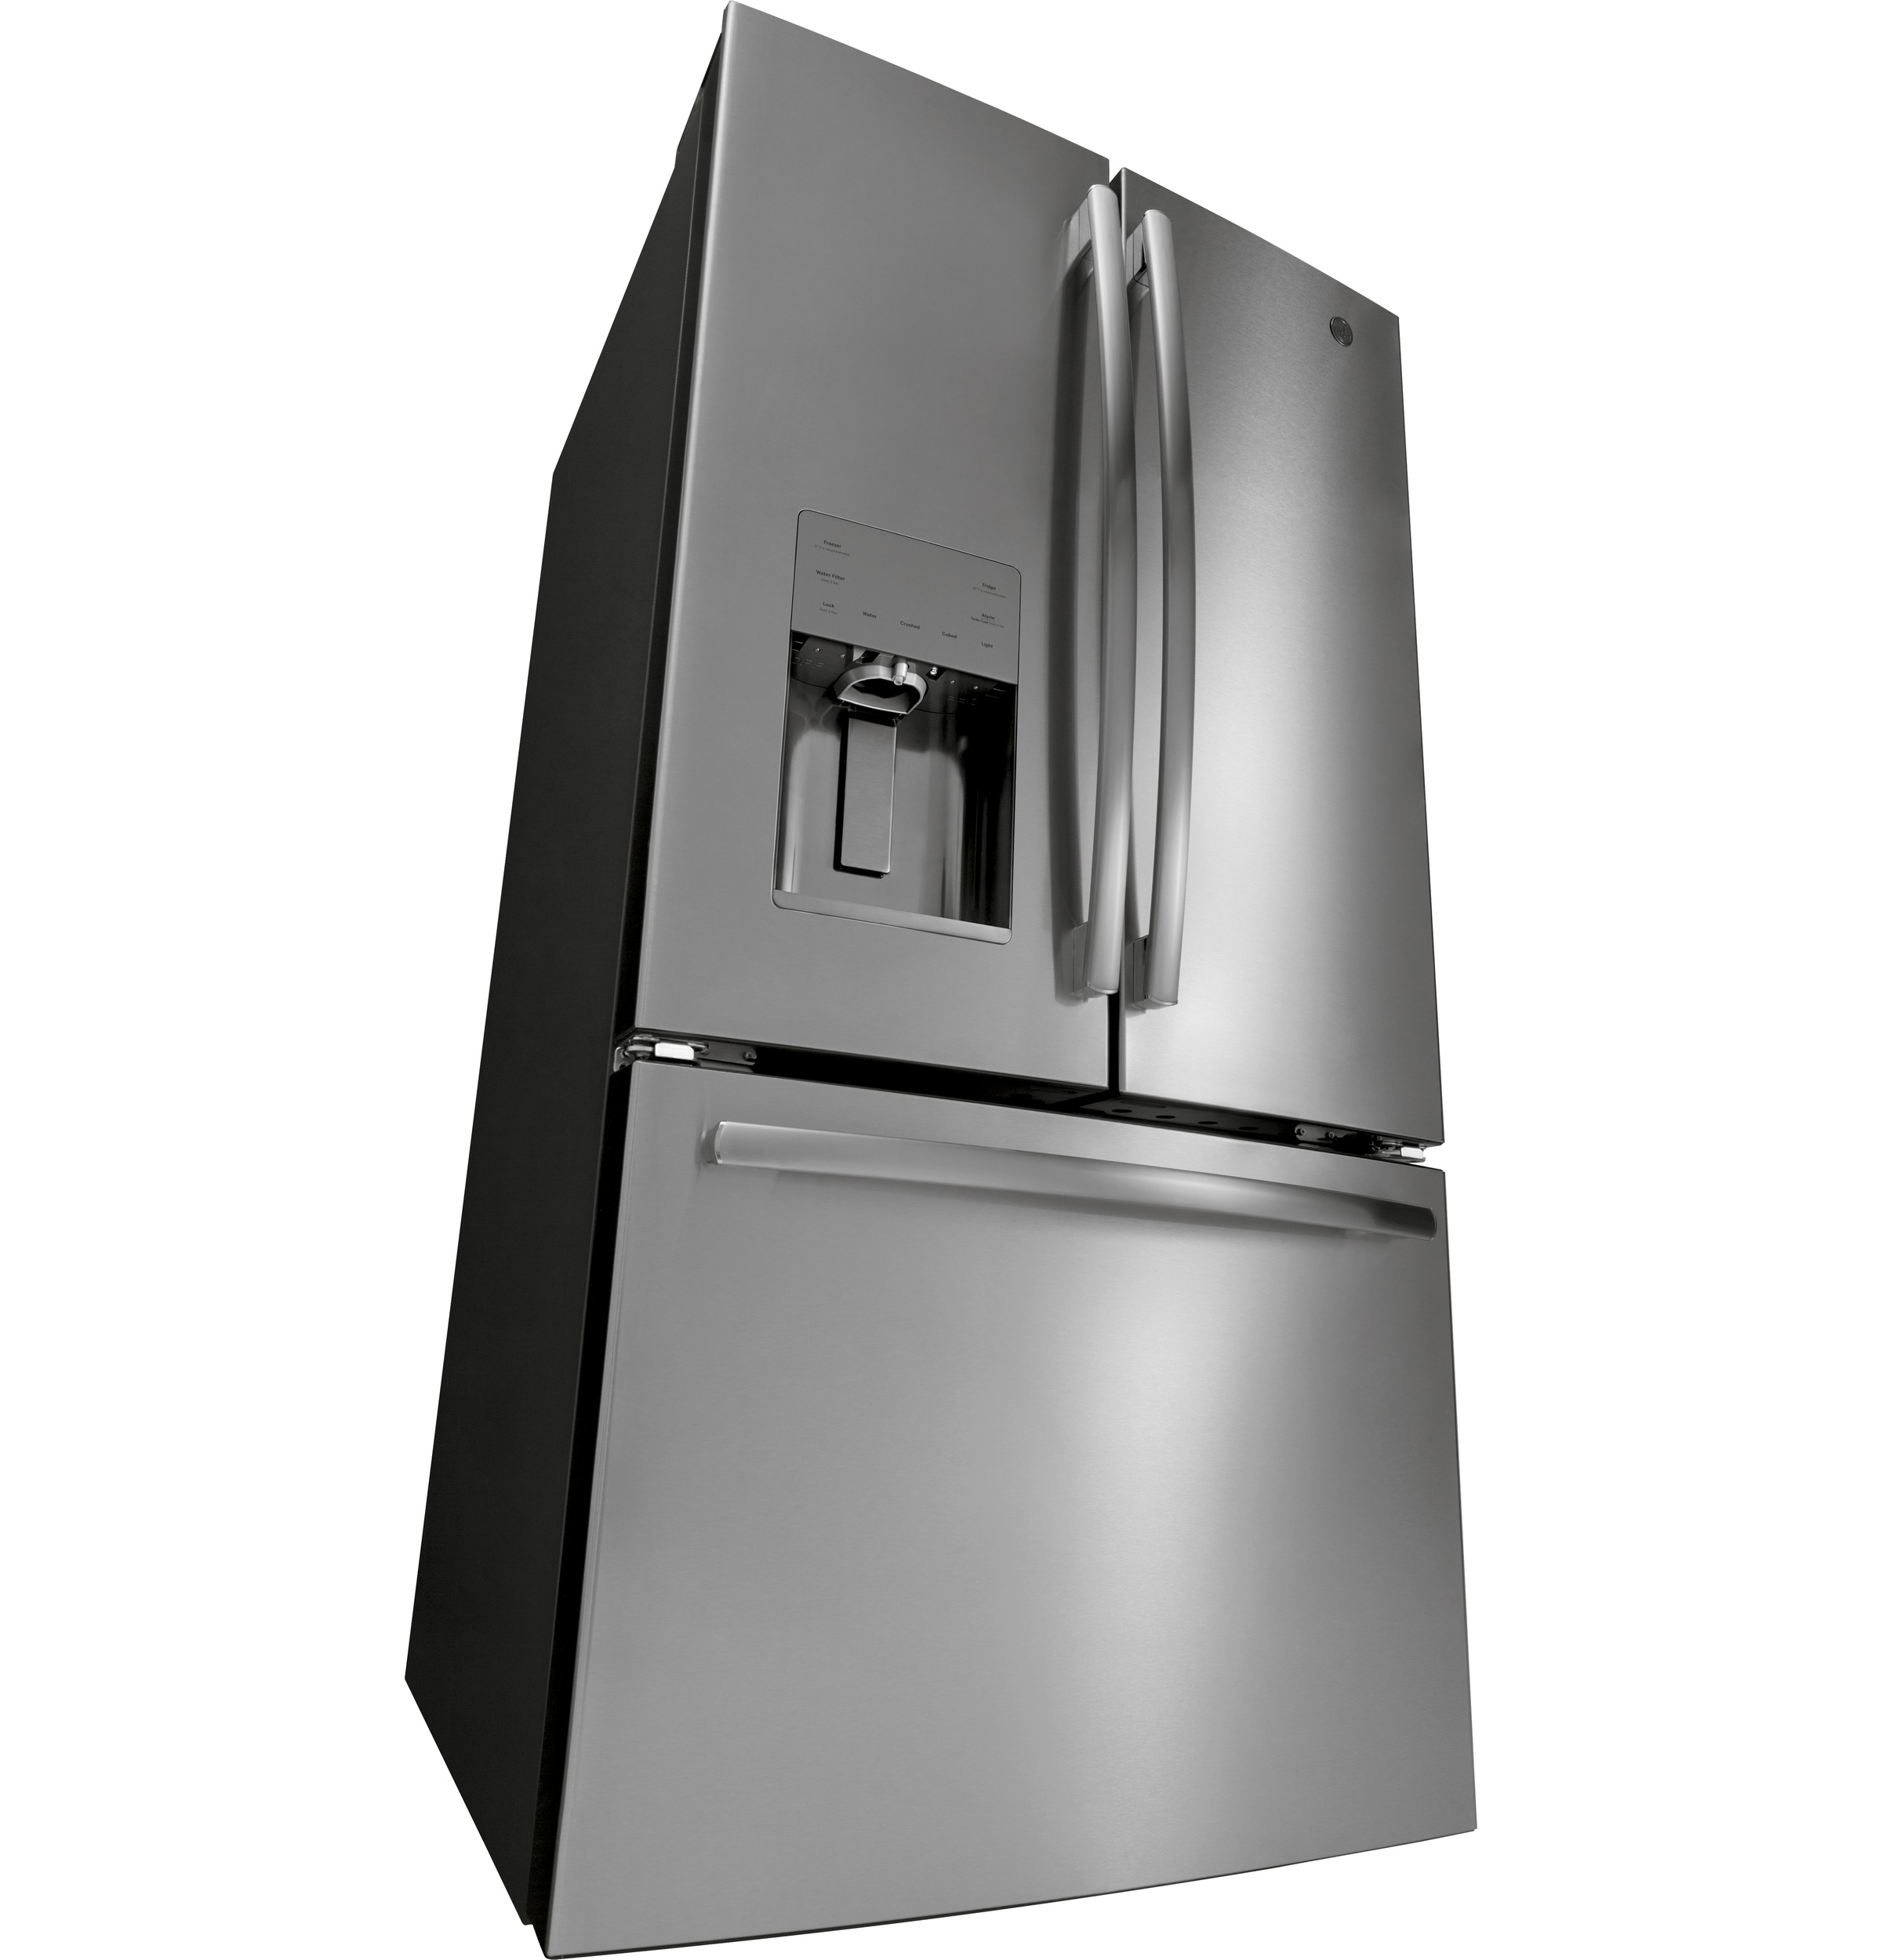 Model: GFE26JSMSS | GE GE® ENERGY STAR® 25.6 Cu. Ft. French-Door Refrigerator